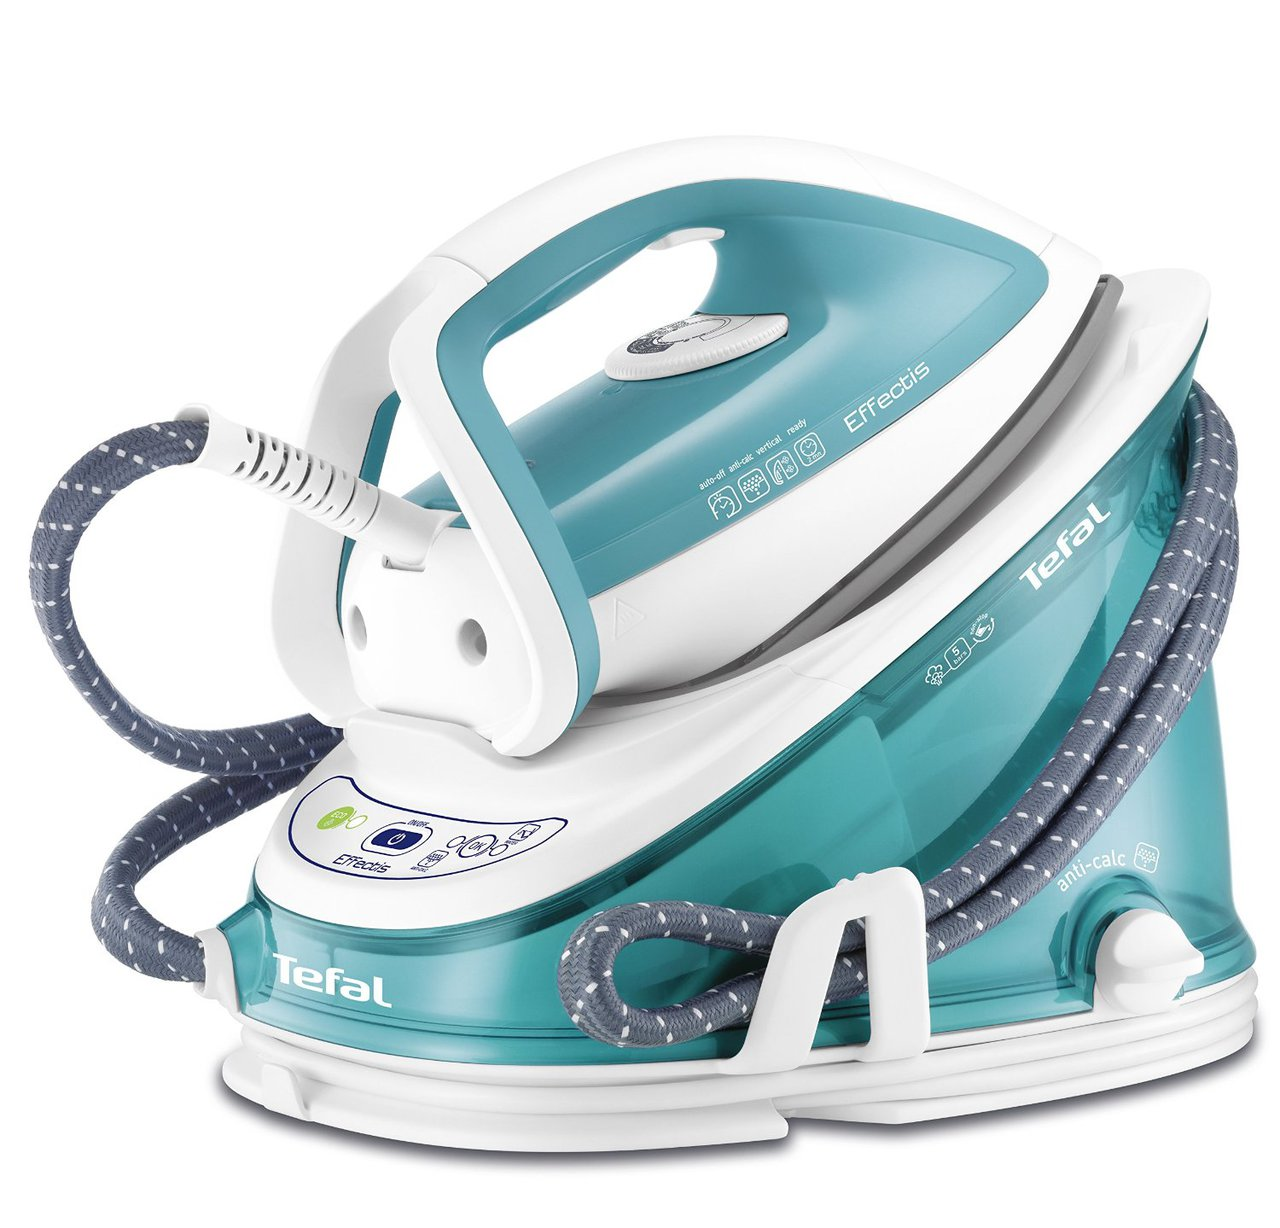 Tefal GV6720 Effectis Steam Generator Iron